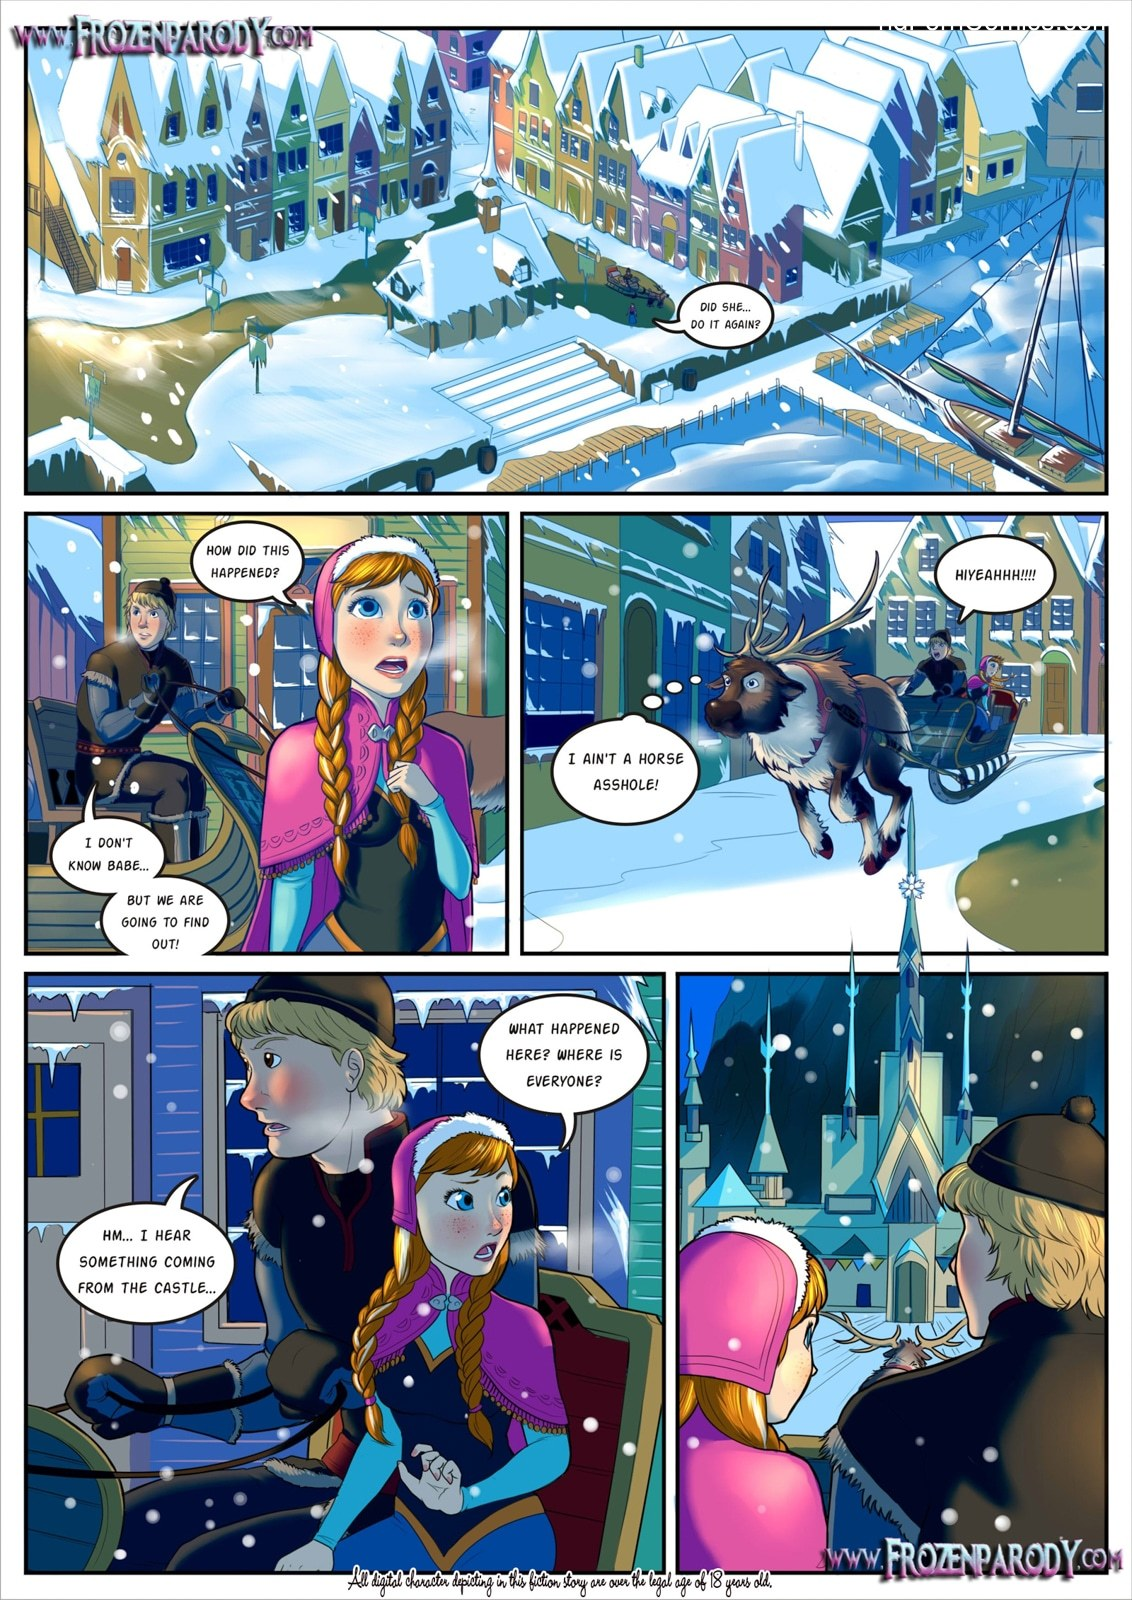 Frozen Parody 13 free sex comic